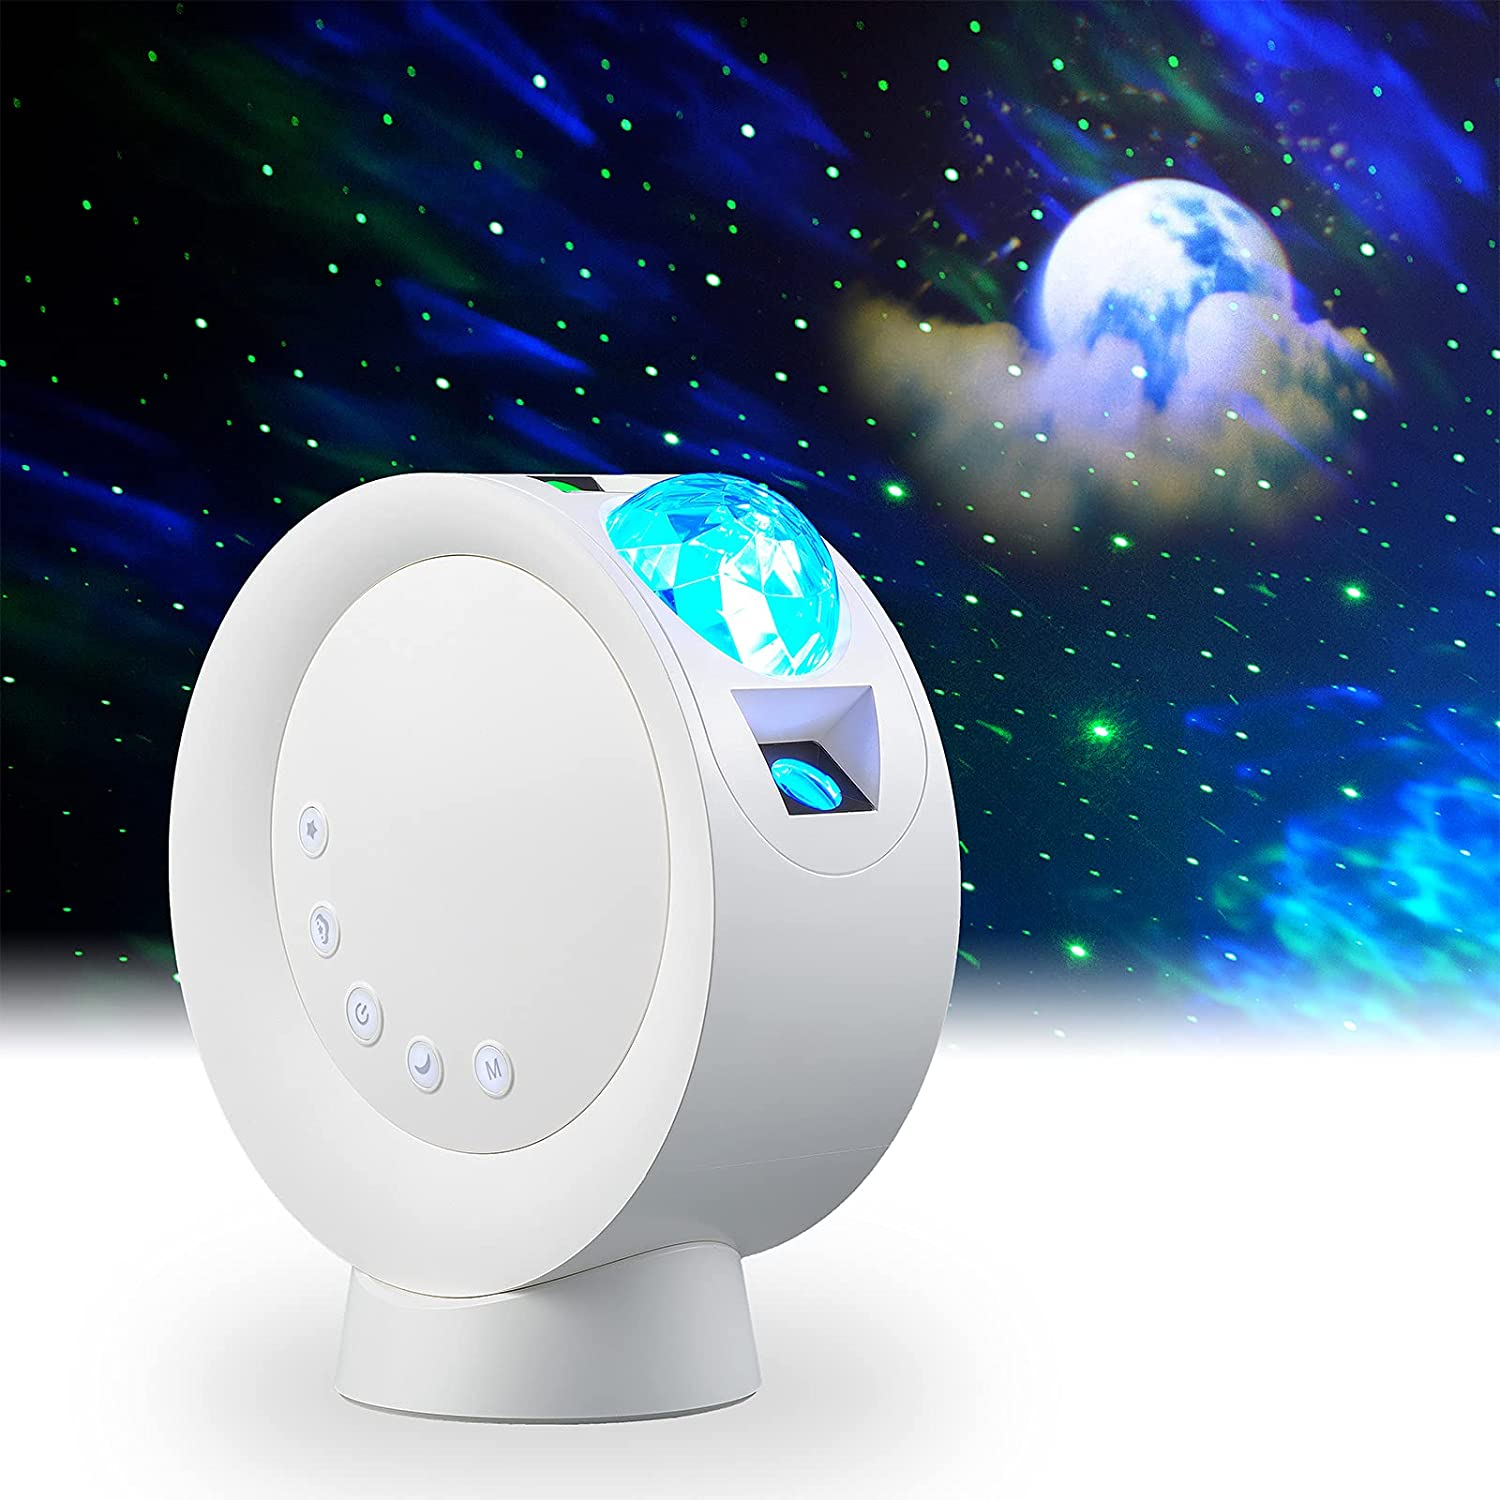 LITENERGY LED Sky Projector Light, Galaxy Lighting, Nebula Star Night Lamp with Base and Remote Control for Gaming Room, Home Theater, Bedroom , or Mood Ambiance (White)